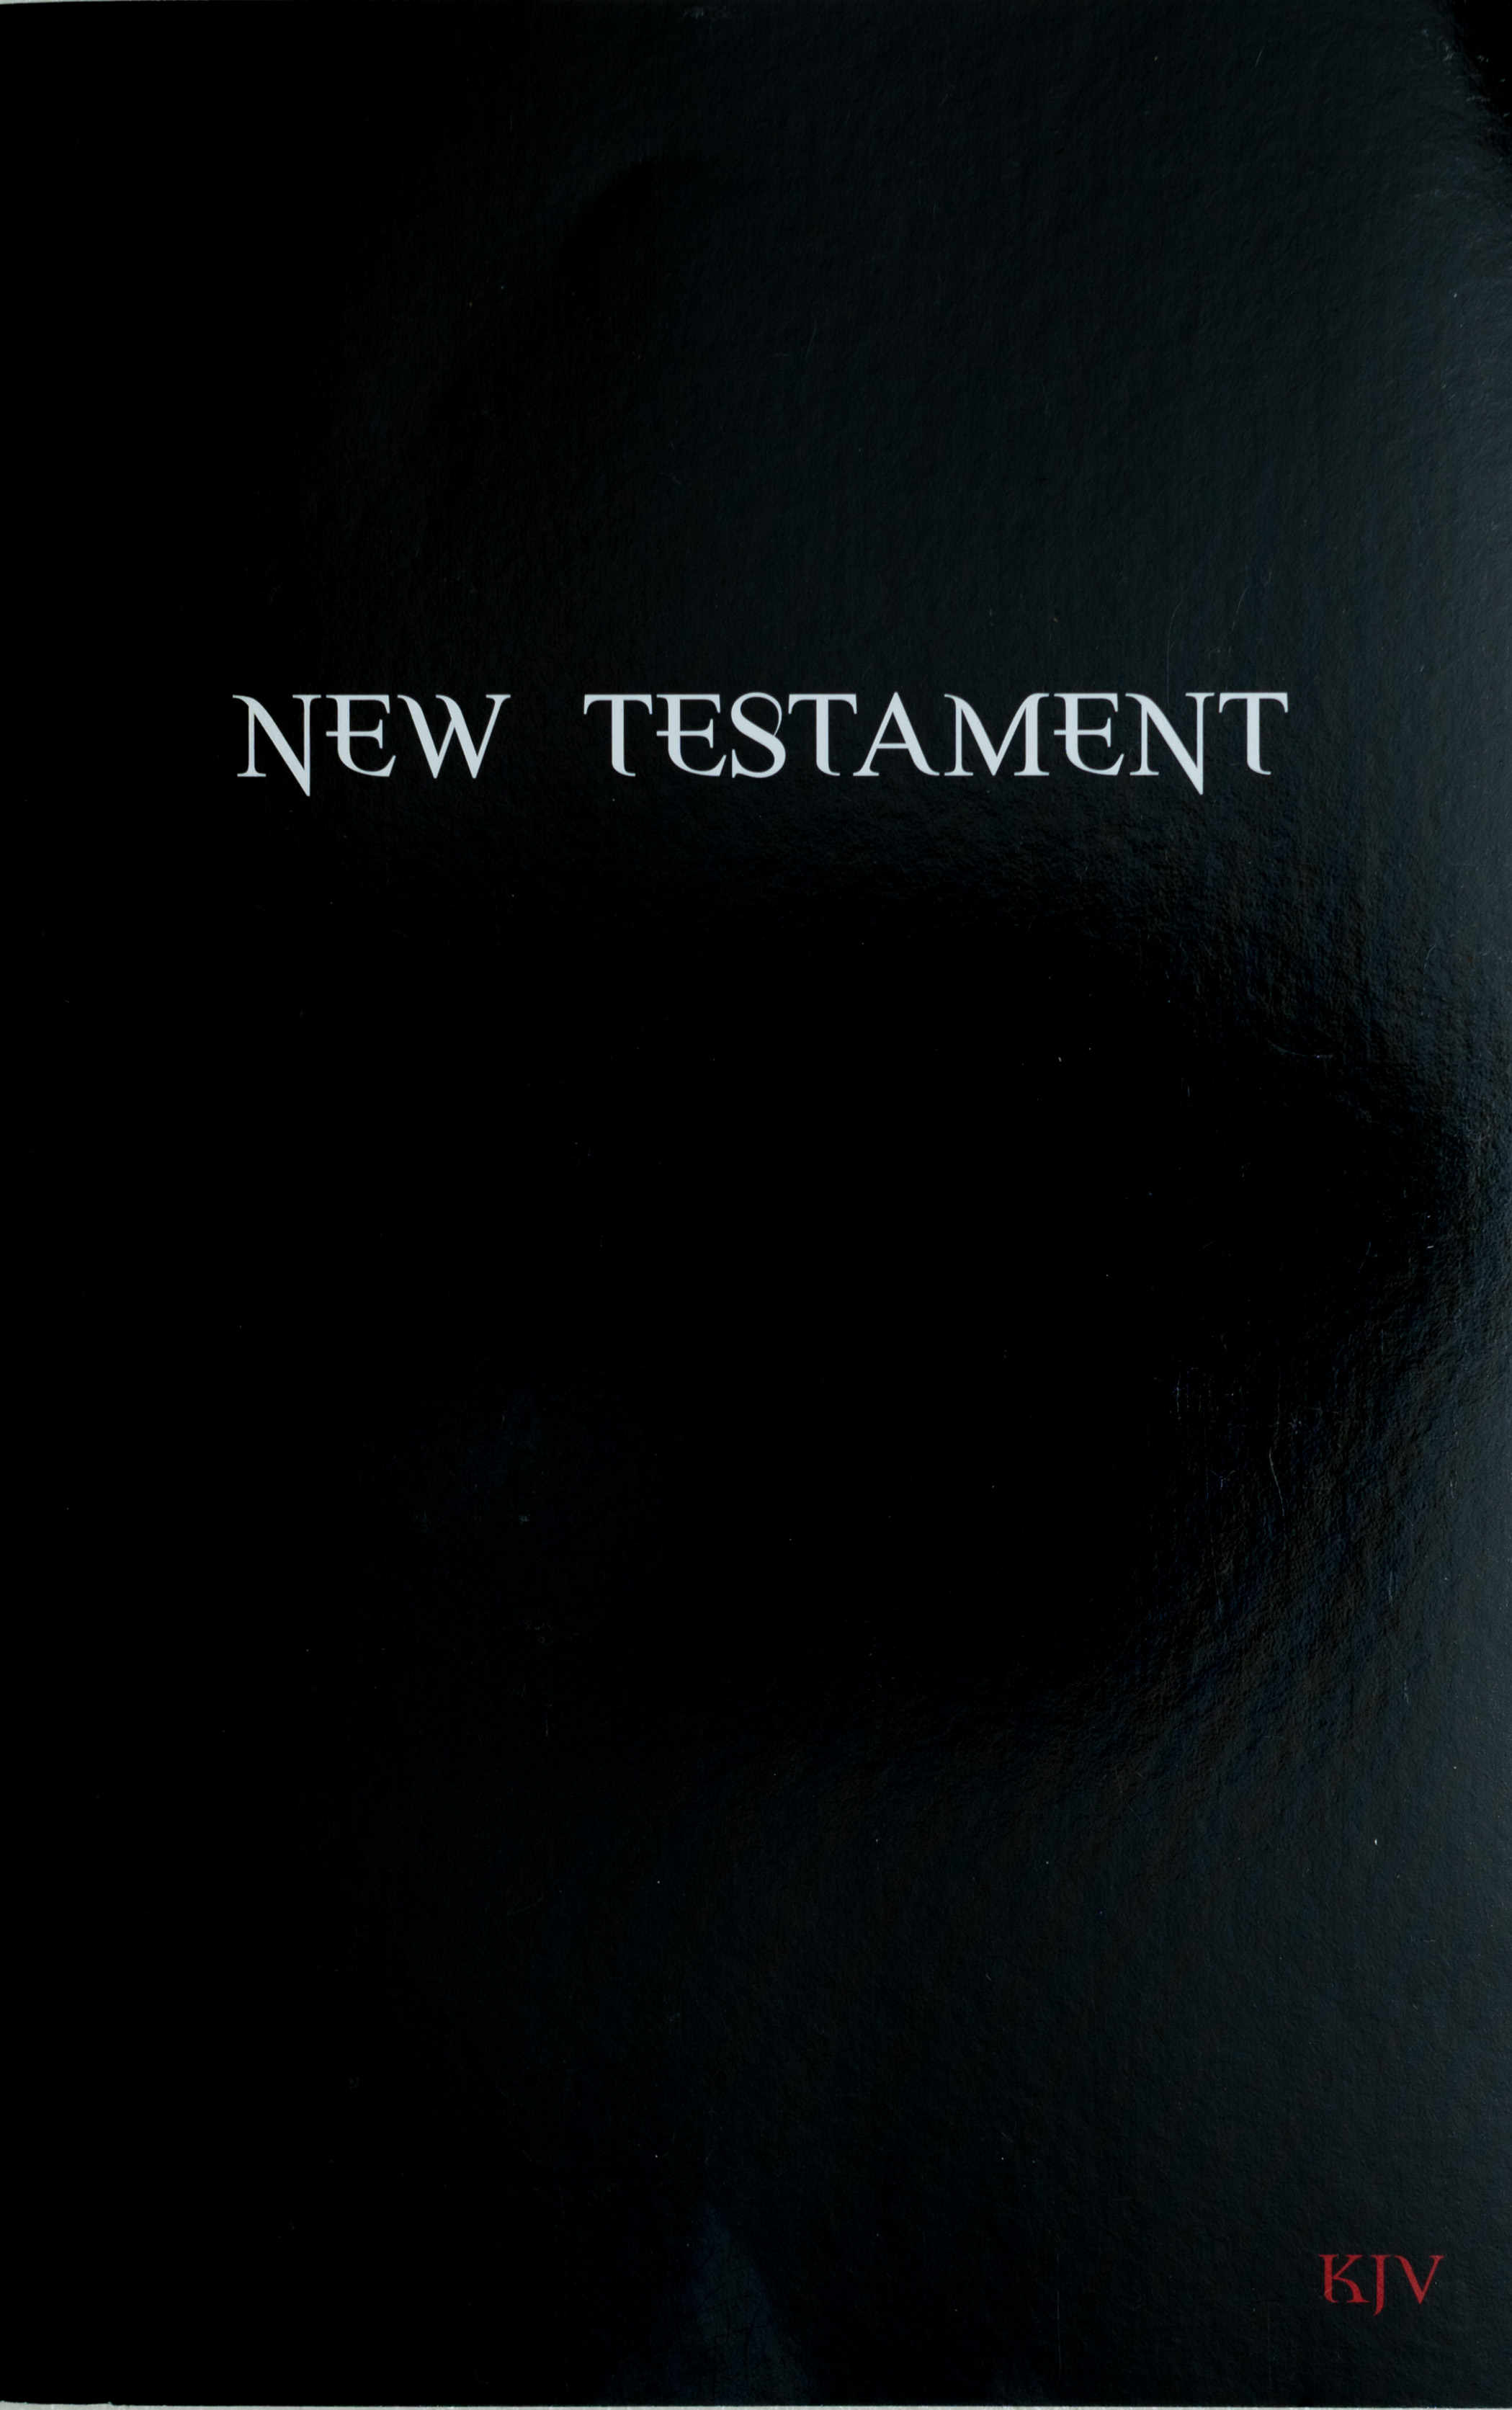 New Testament KJV